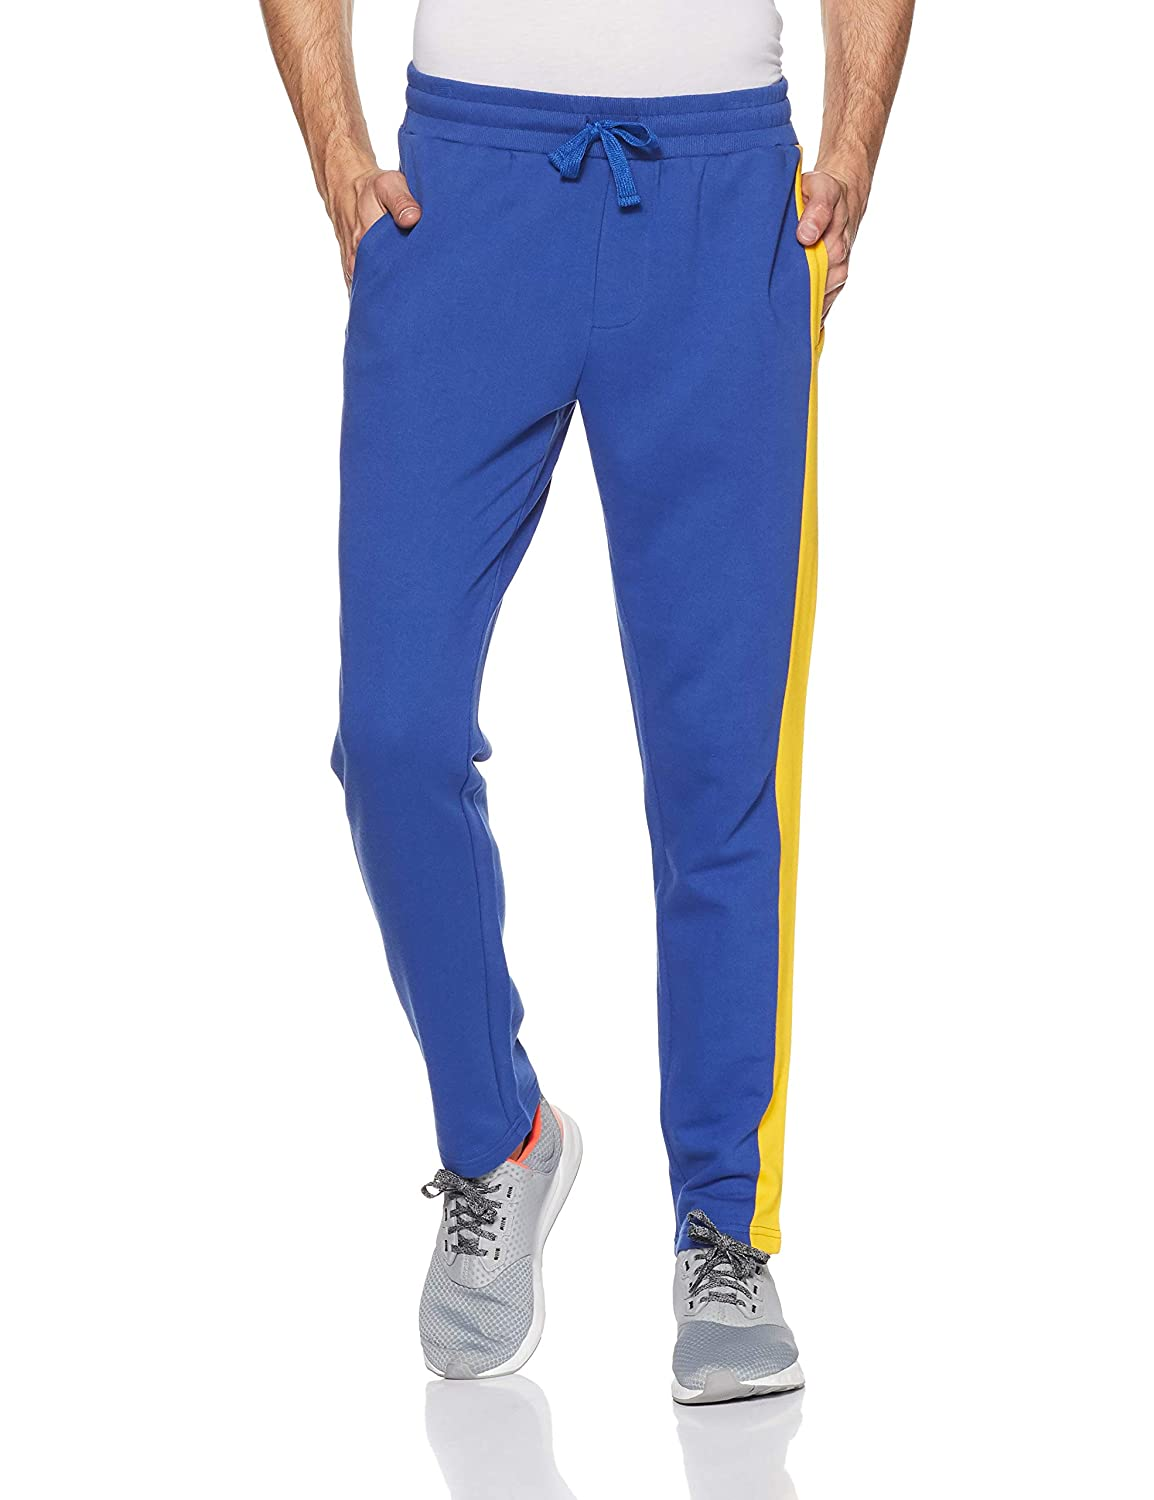 UCB Men's Relaxed Fit Joggers – size 34